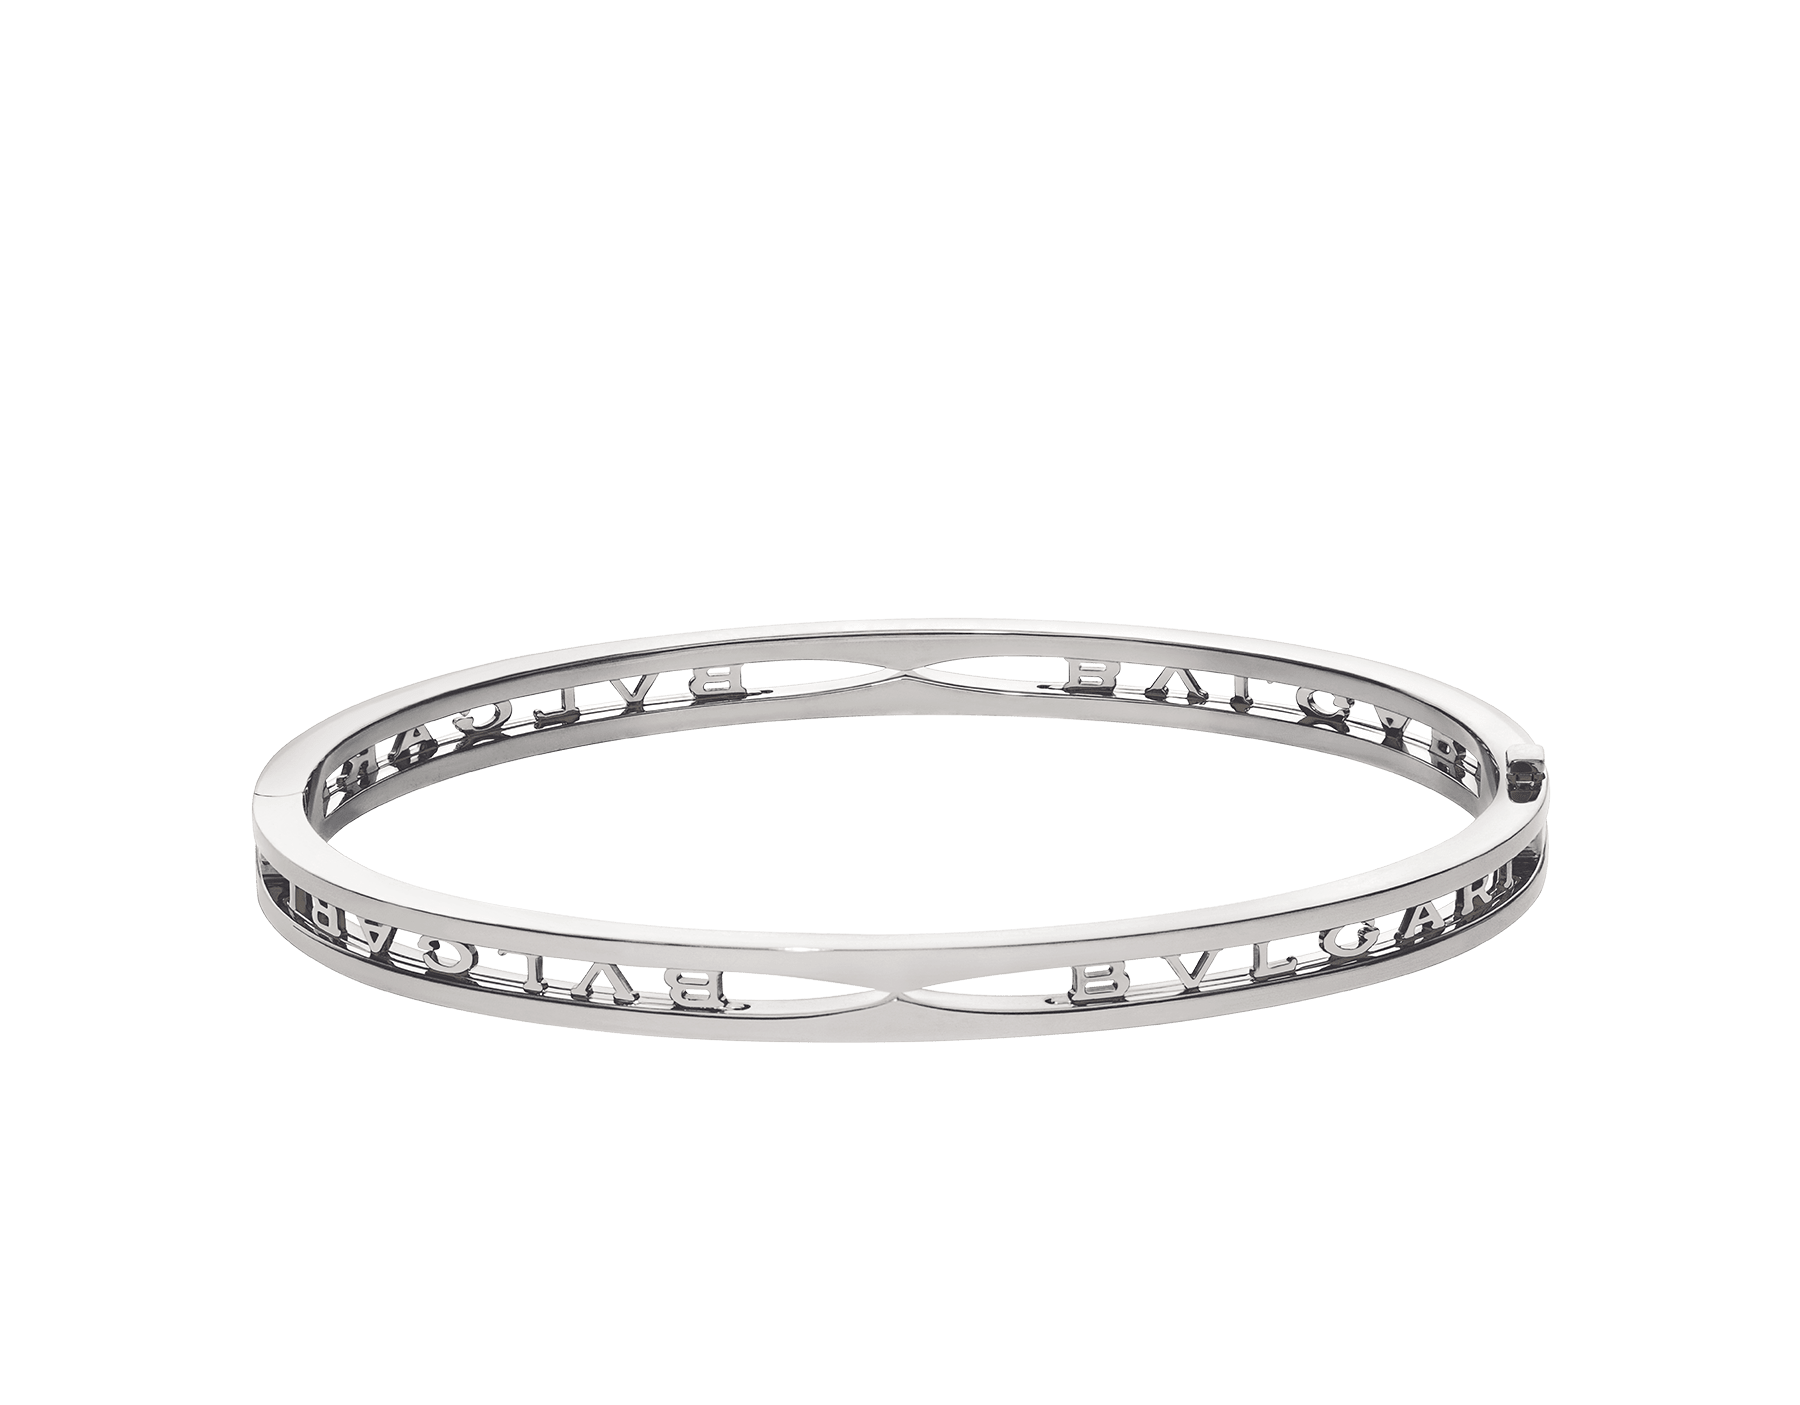 B.zero1 18 kt white gold bangle bracelet with BVLGARI logo on the spiral BR858725 image 2